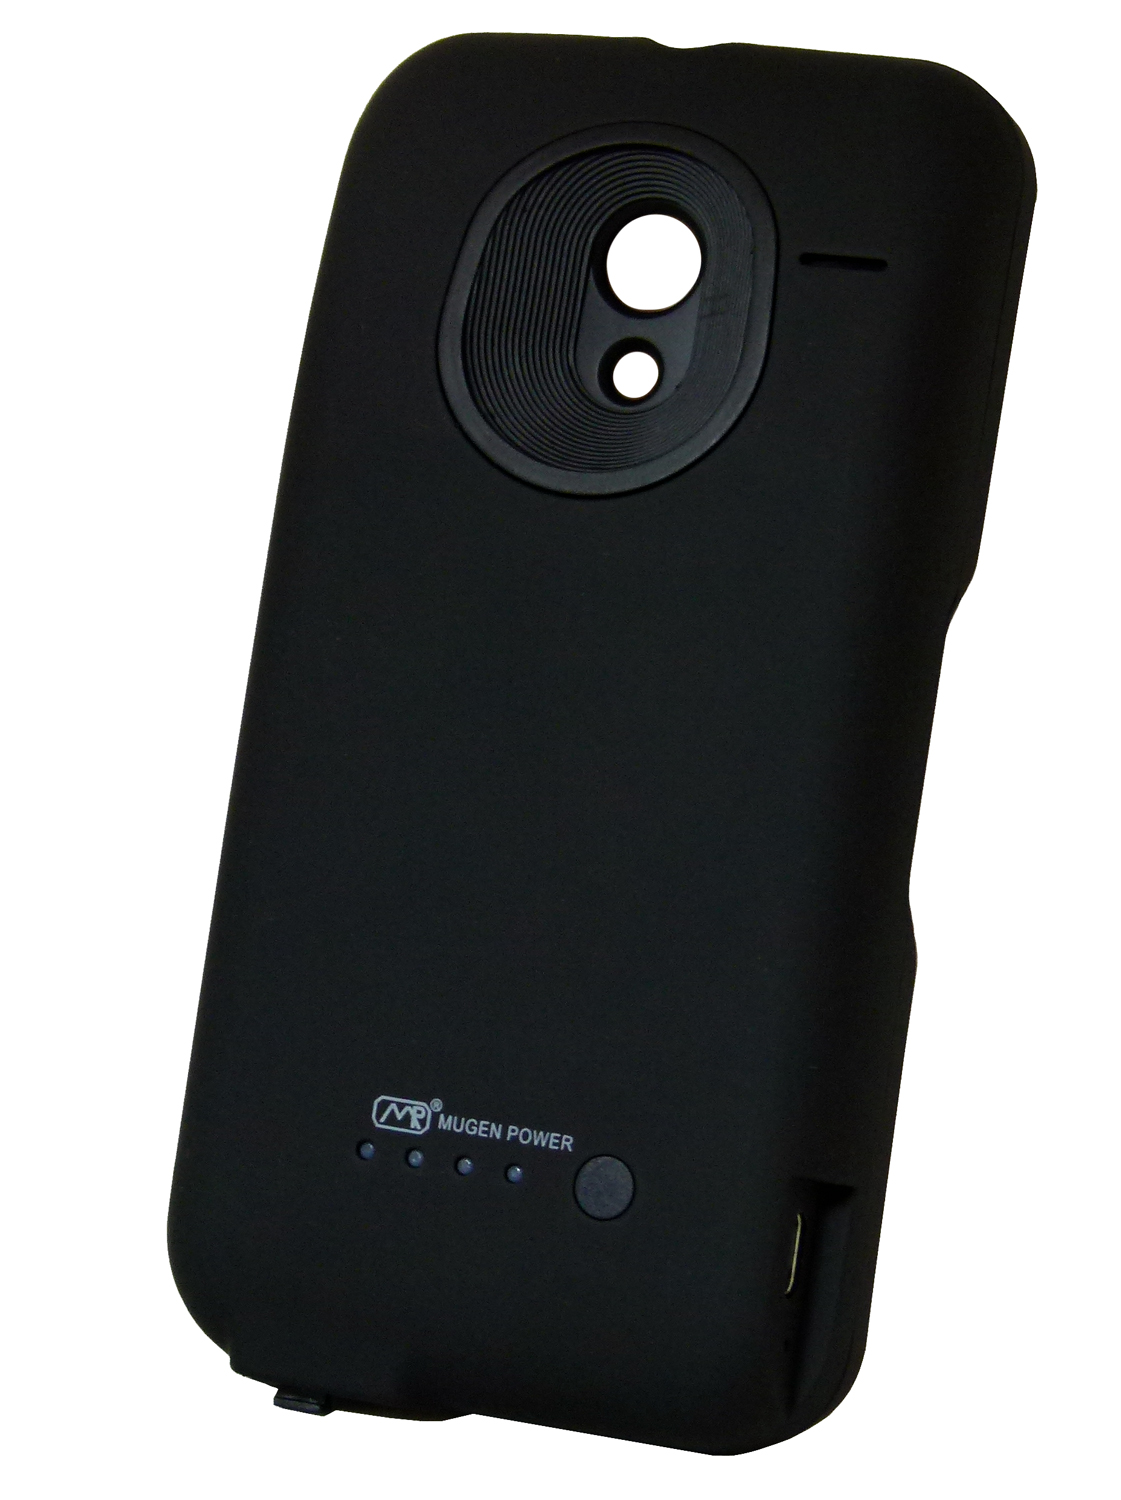 motorola moto x extended battery case by mugen power provides more than double the power than. Black Bedroom Furniture Sets. Home Design Ideas